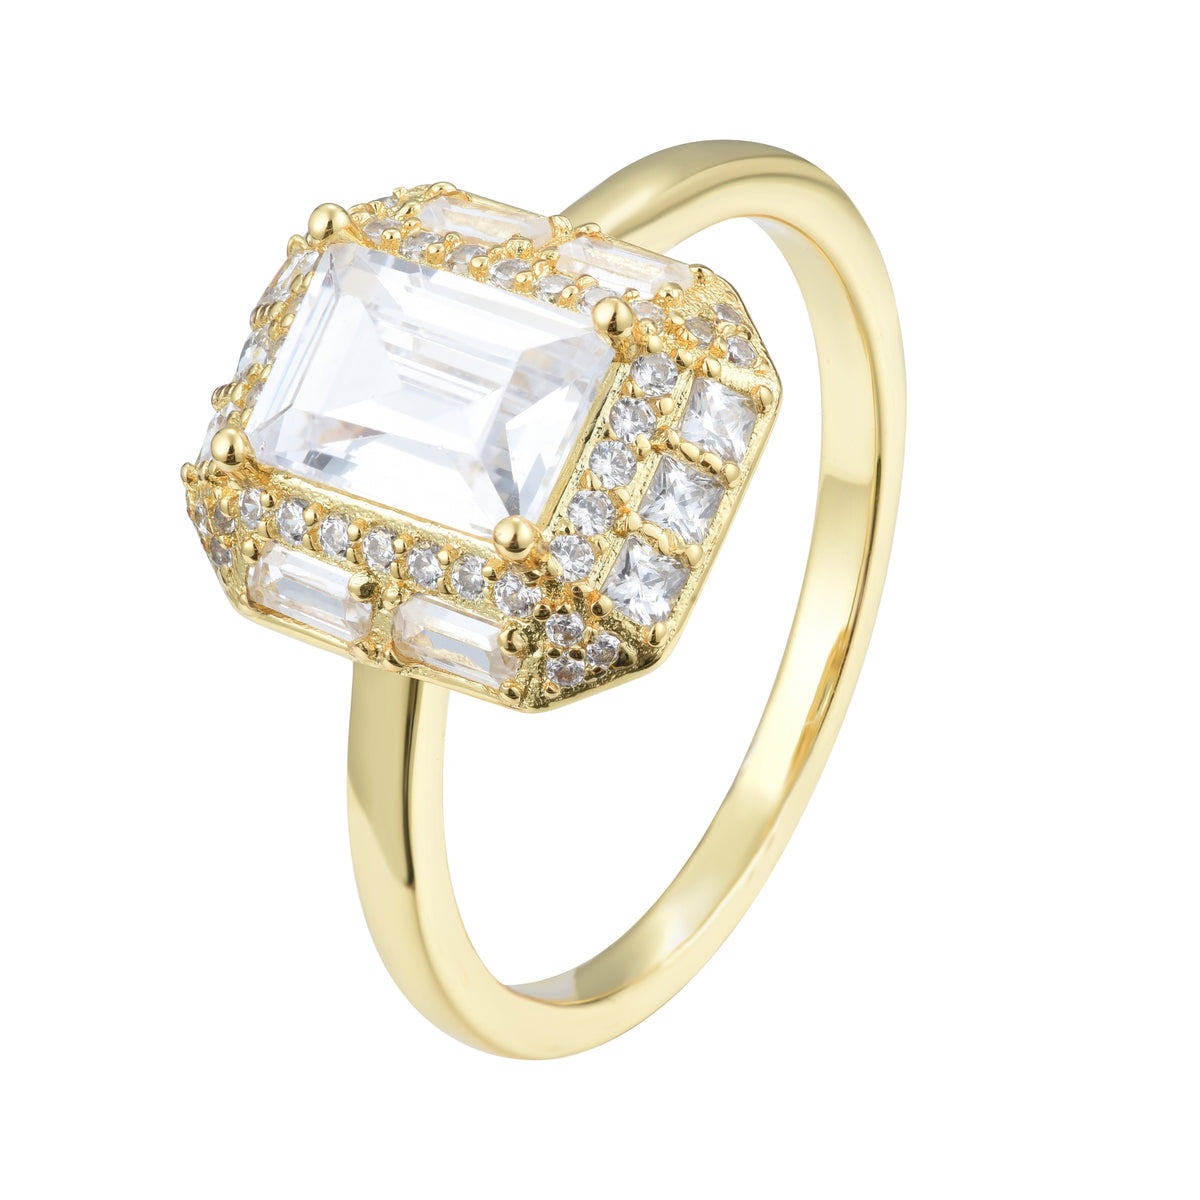 Ferentina | Brownie Ring | 925 Silver | White CZ | 18K Gold Plated